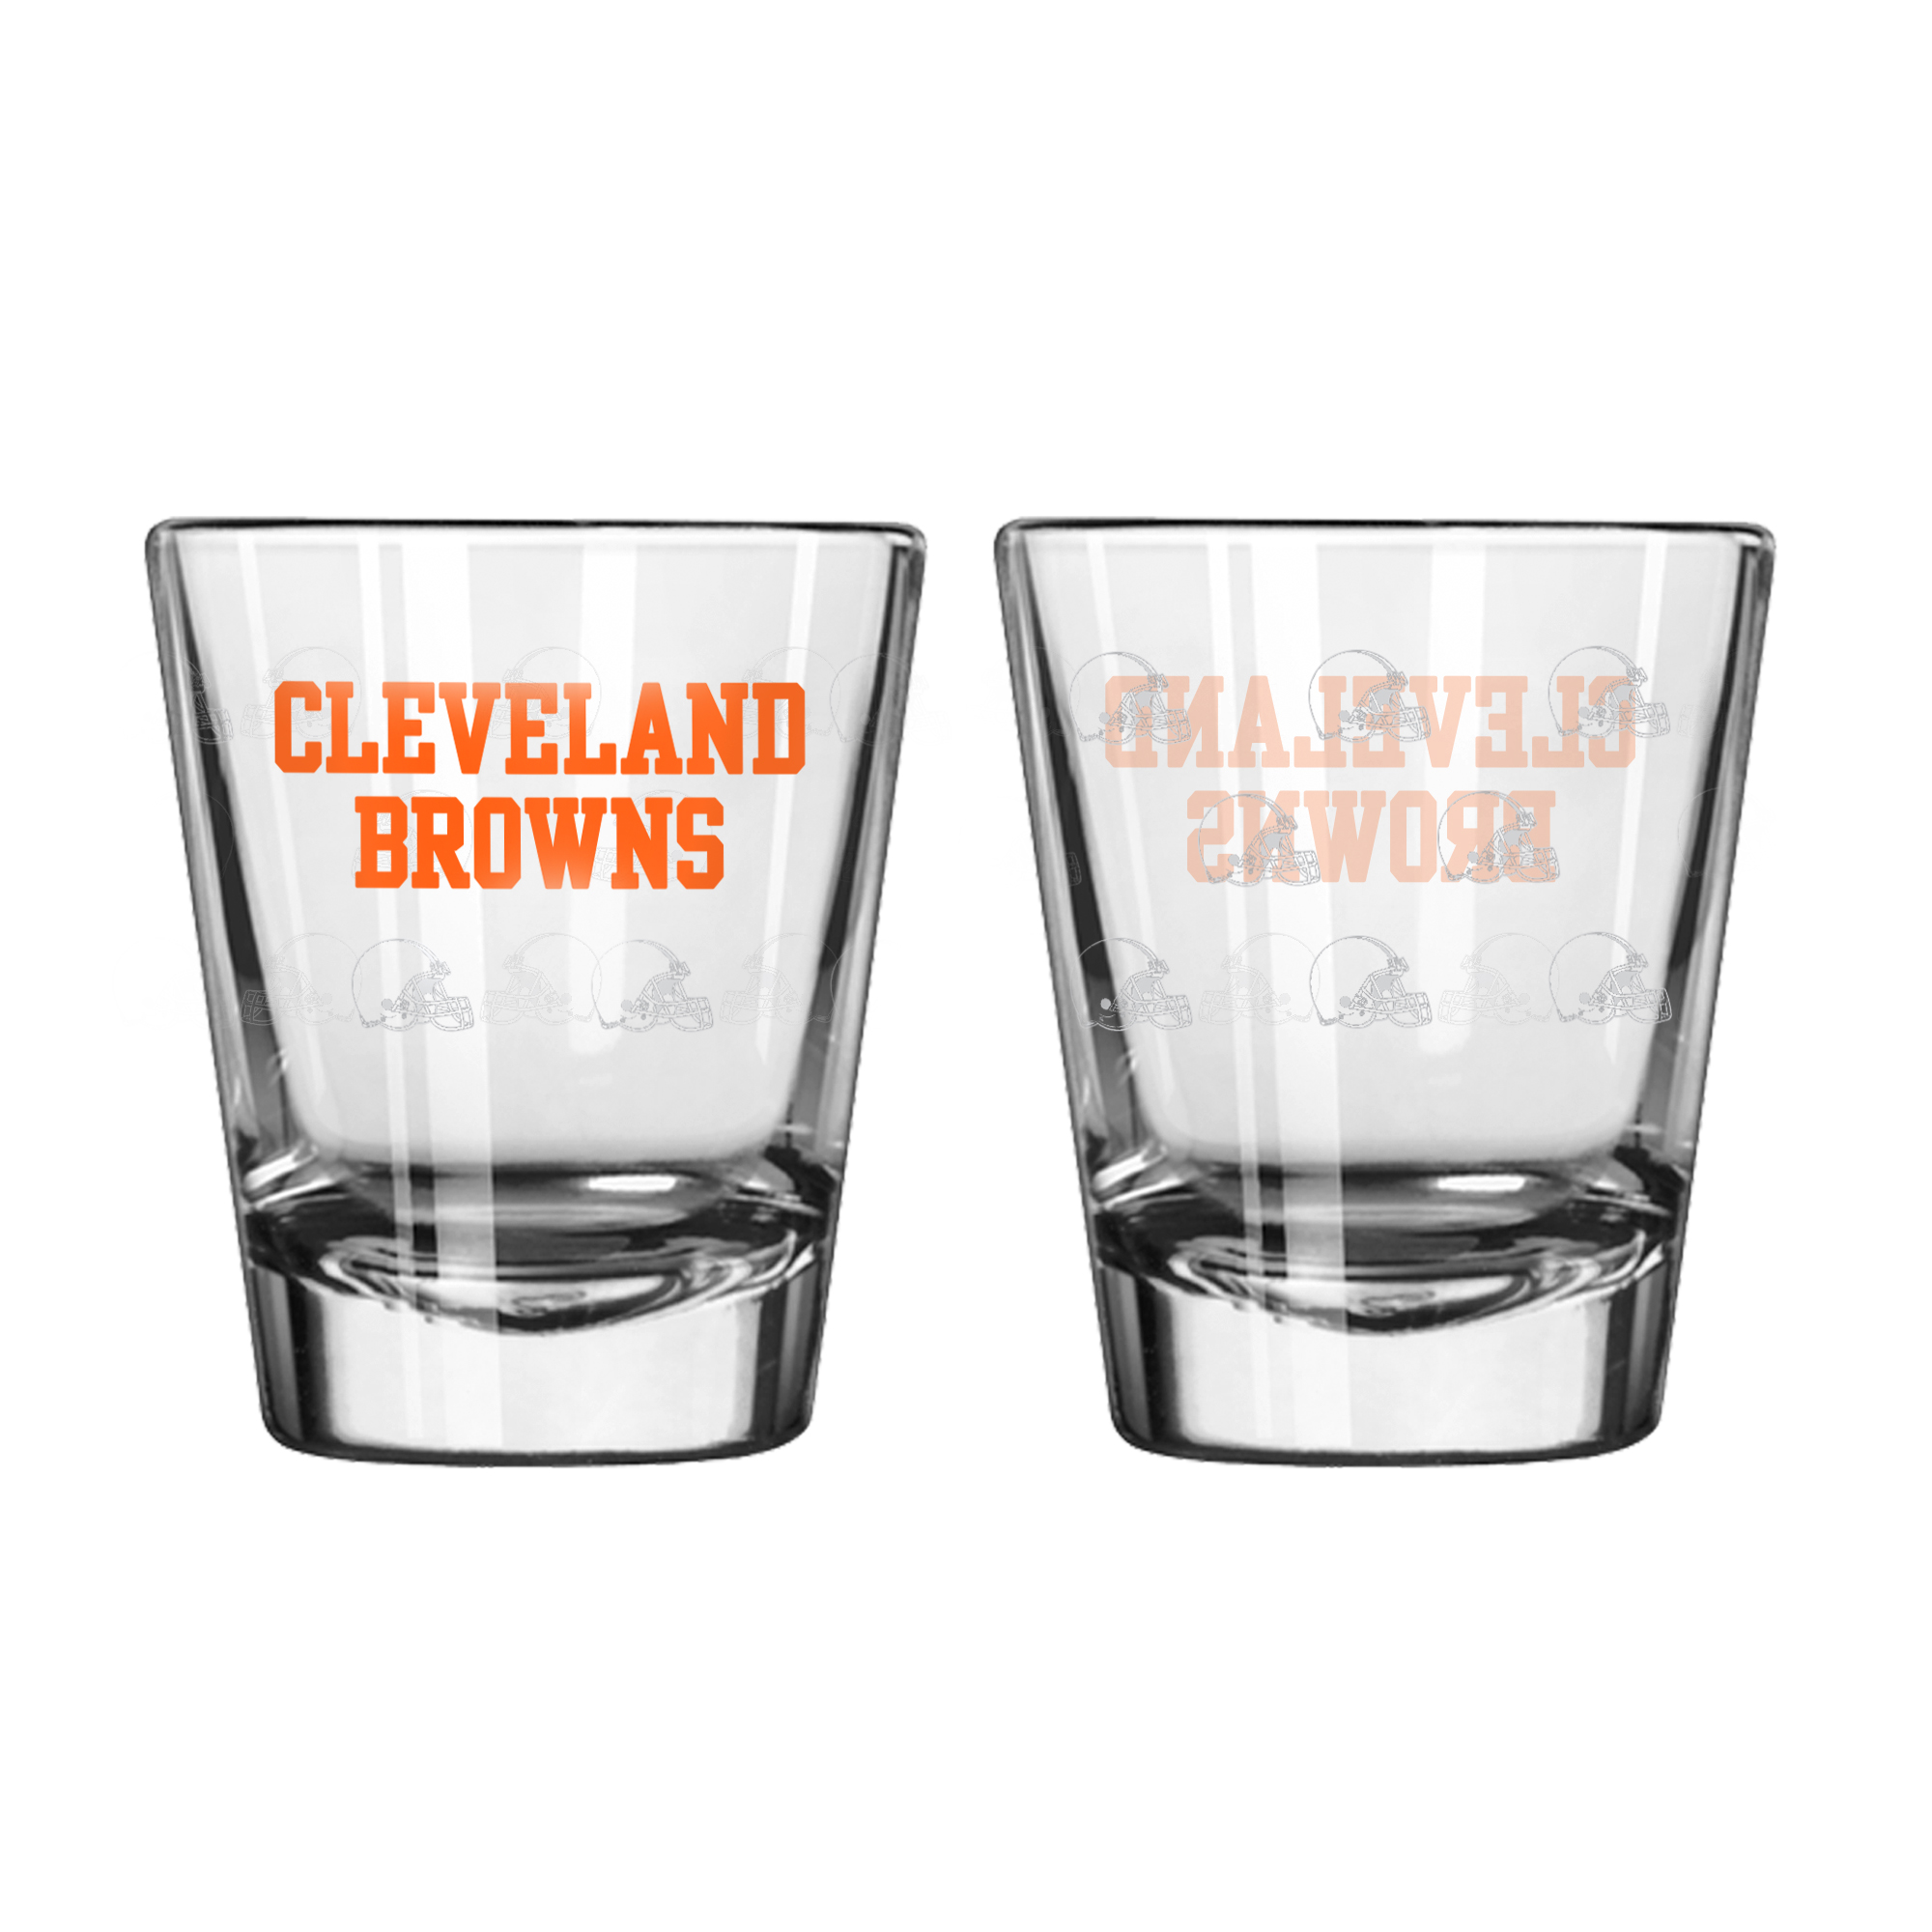 Baseball & Softball Mlb Baseball & Softball Cleveland Indians Shot Glasses - 4245107059 - Cleveland Browns Shot Glass-2 Pack Satin Etch 4245107059